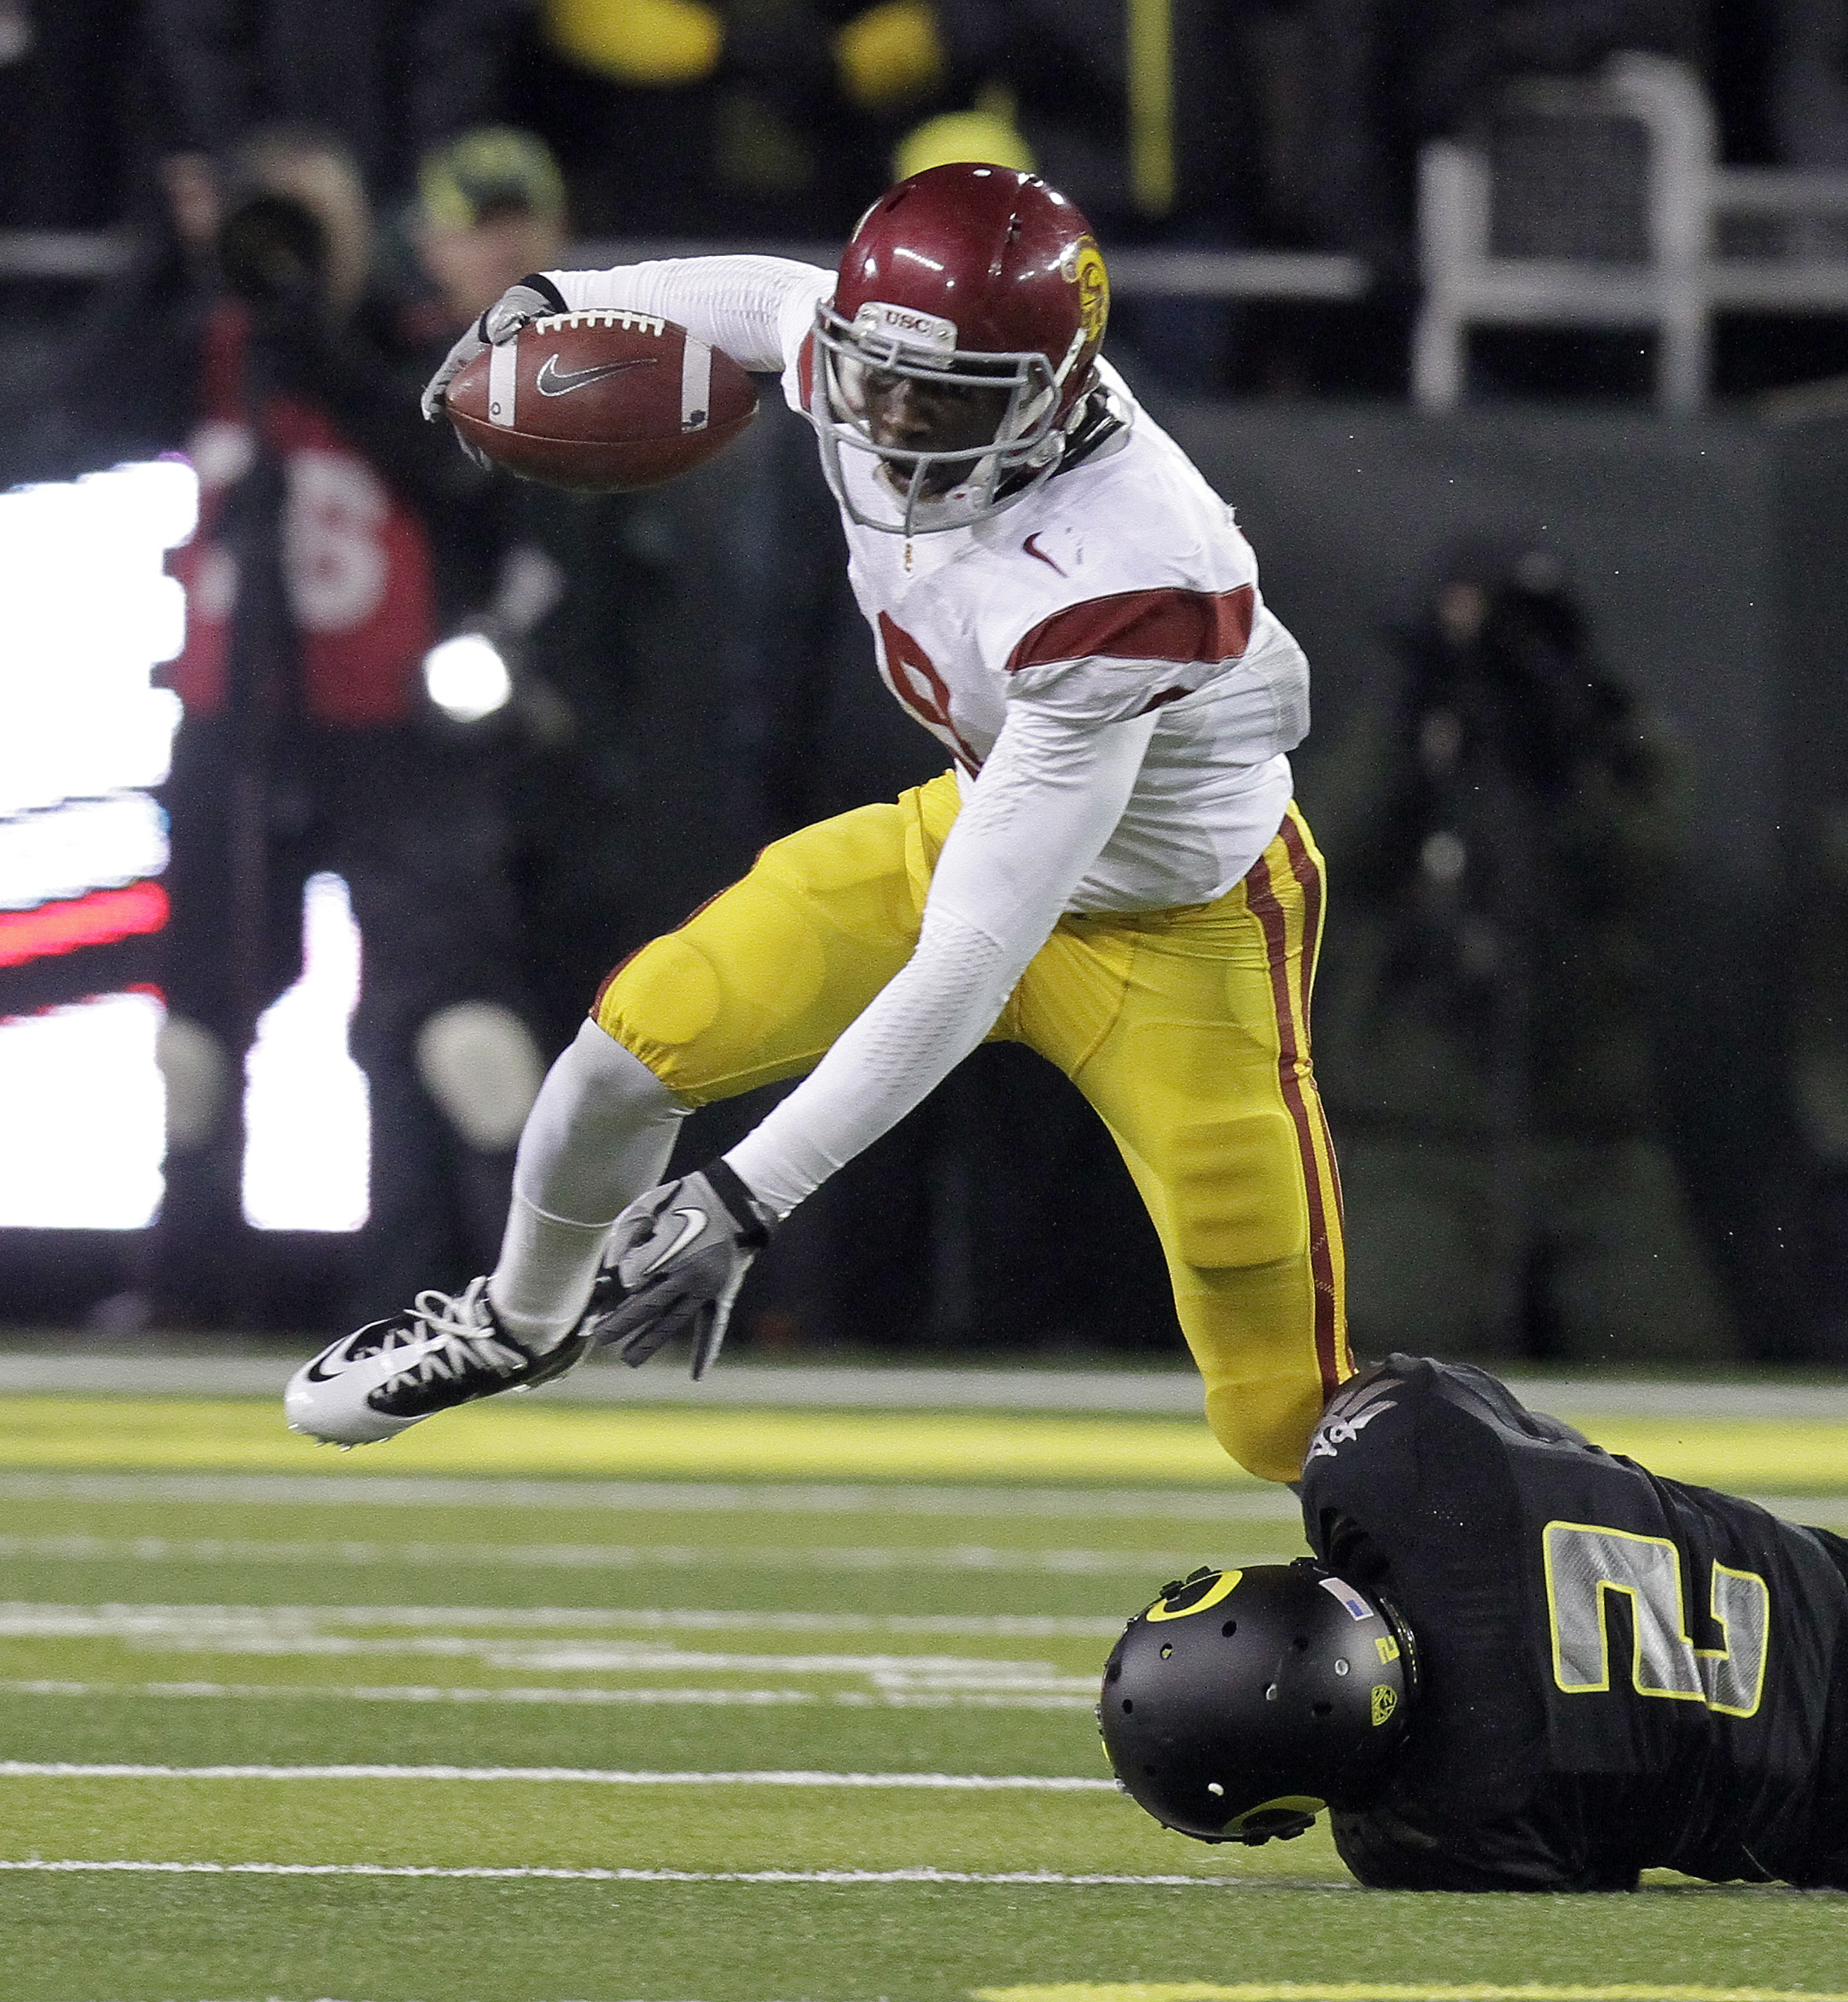 USC's Marqise Lee emerged as a big-play guy as a true freshman last fall. (AP)